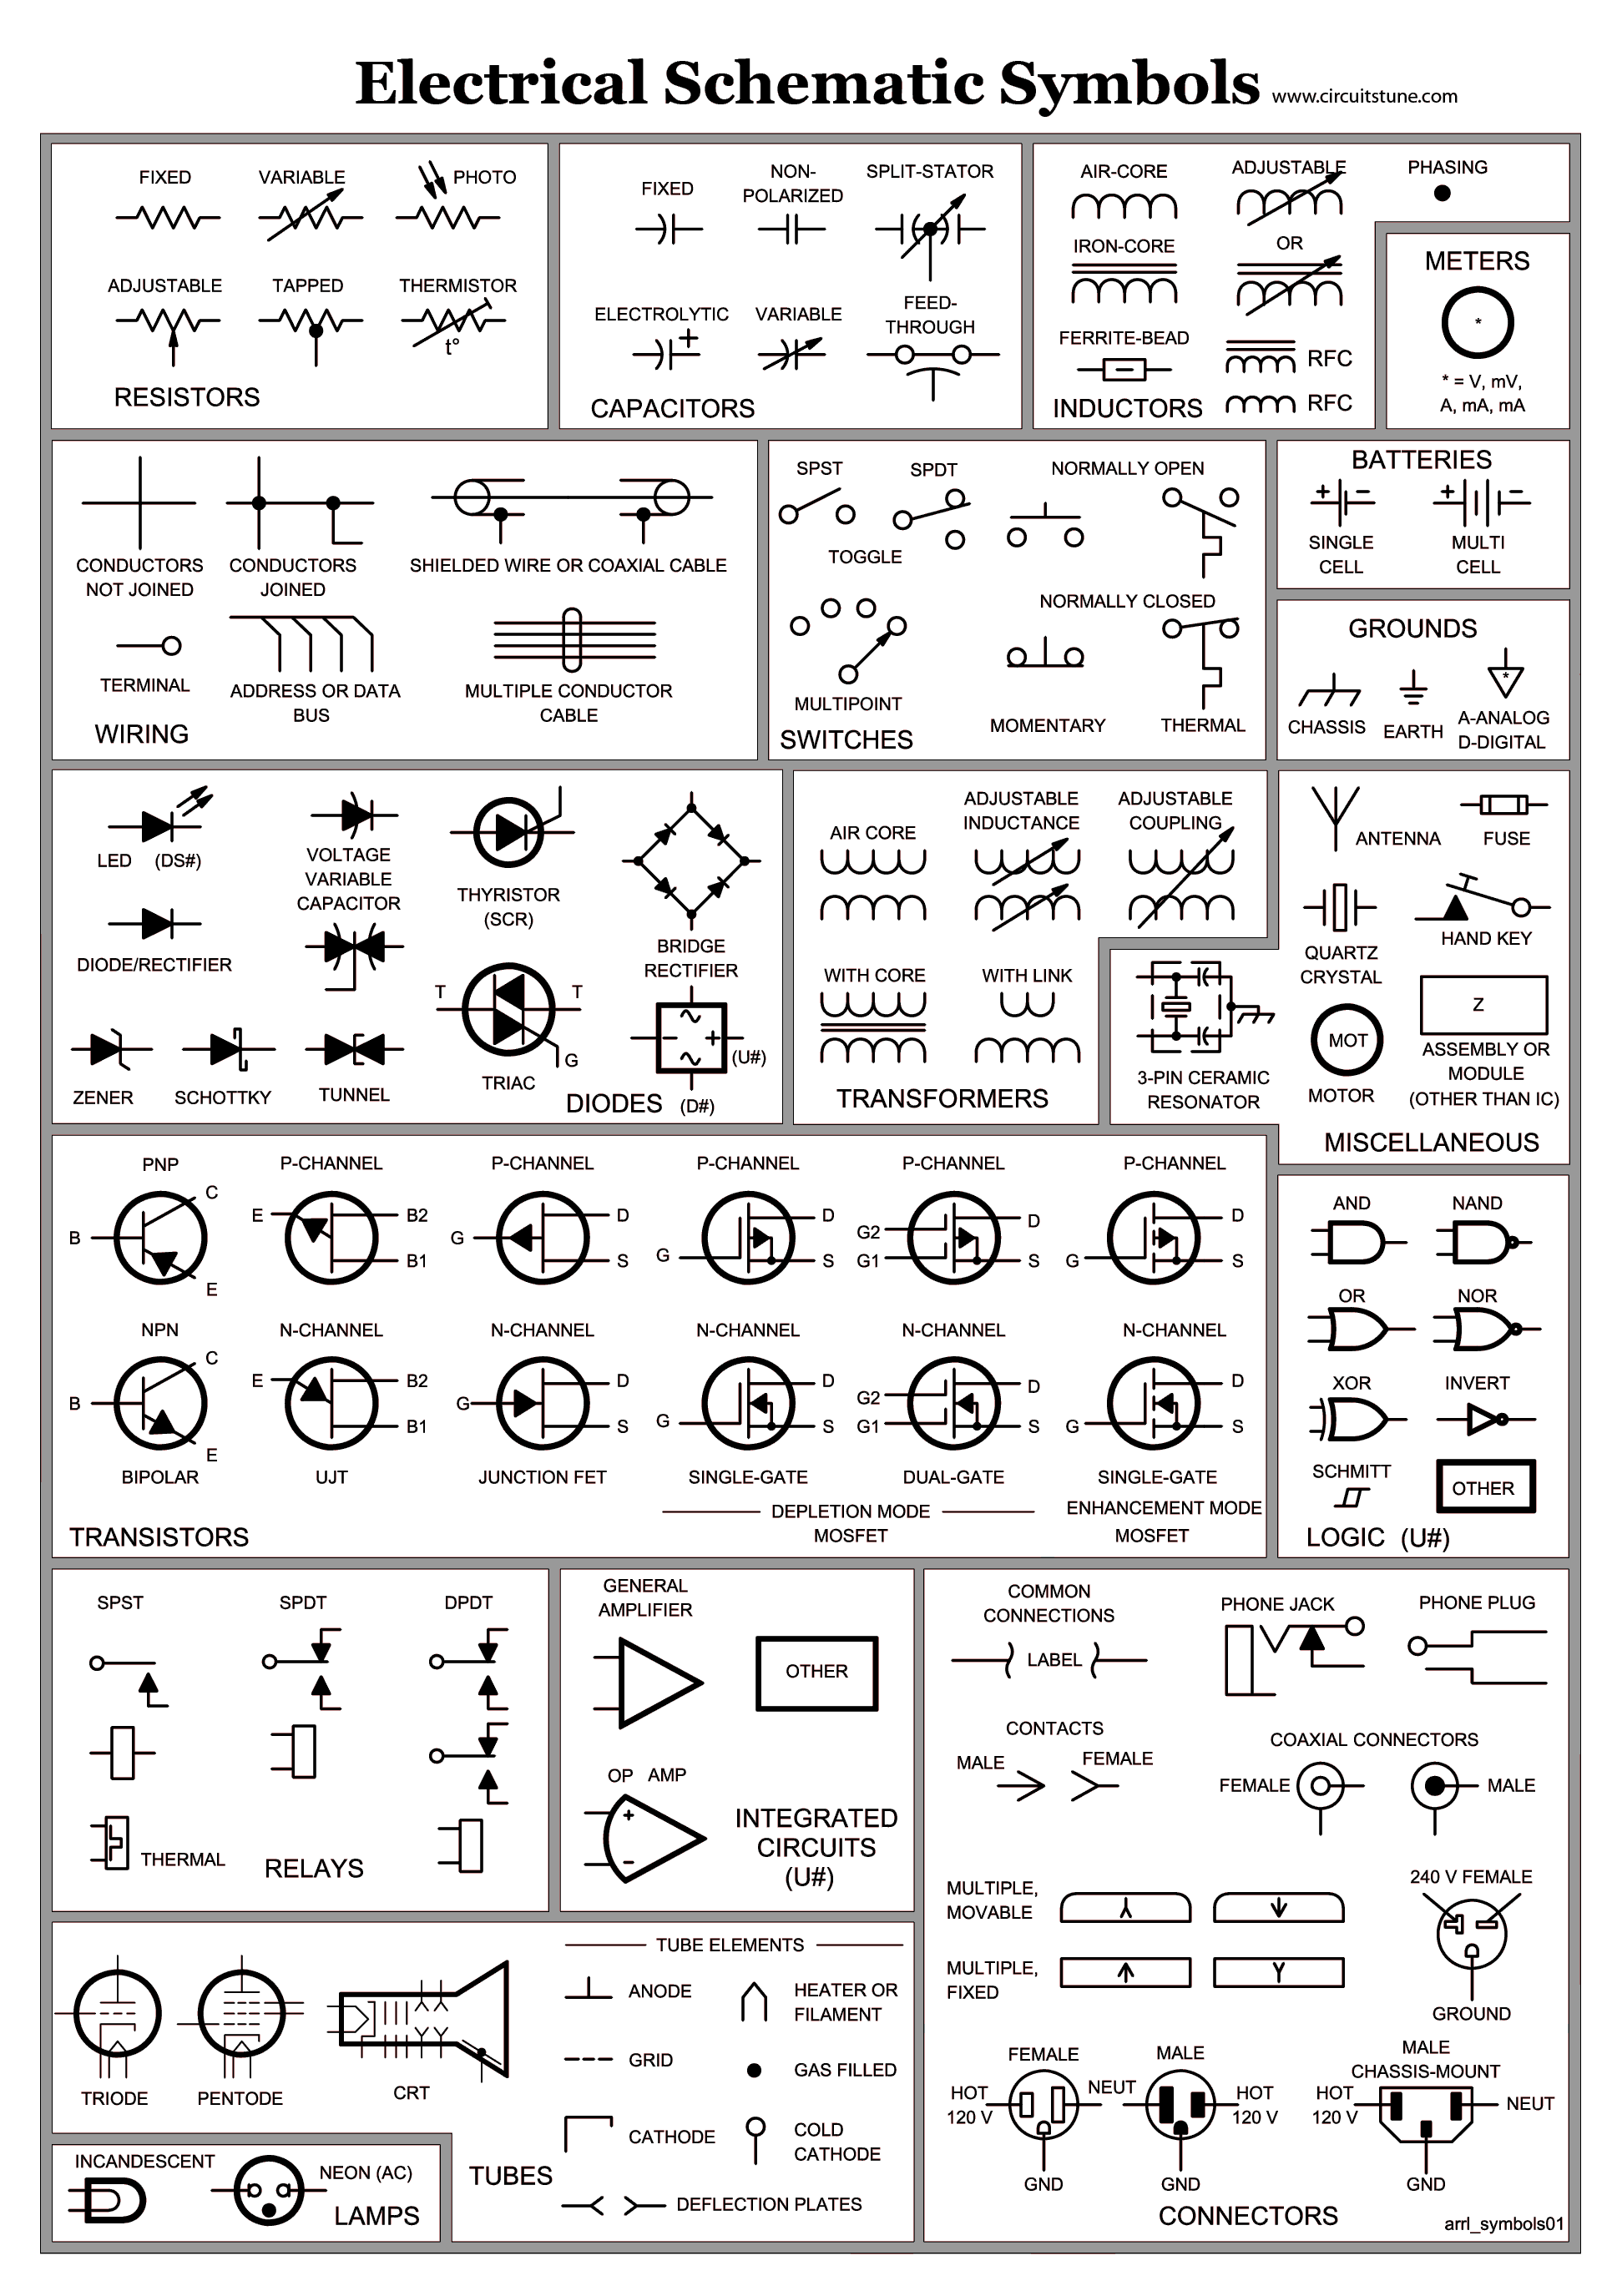 electrical schematic symbols wire diagram symbols automotive wiring Wiring Diagram Symbols Chart electrical schematic symbols wire diagram symbols automotive wiring schematic\u2026